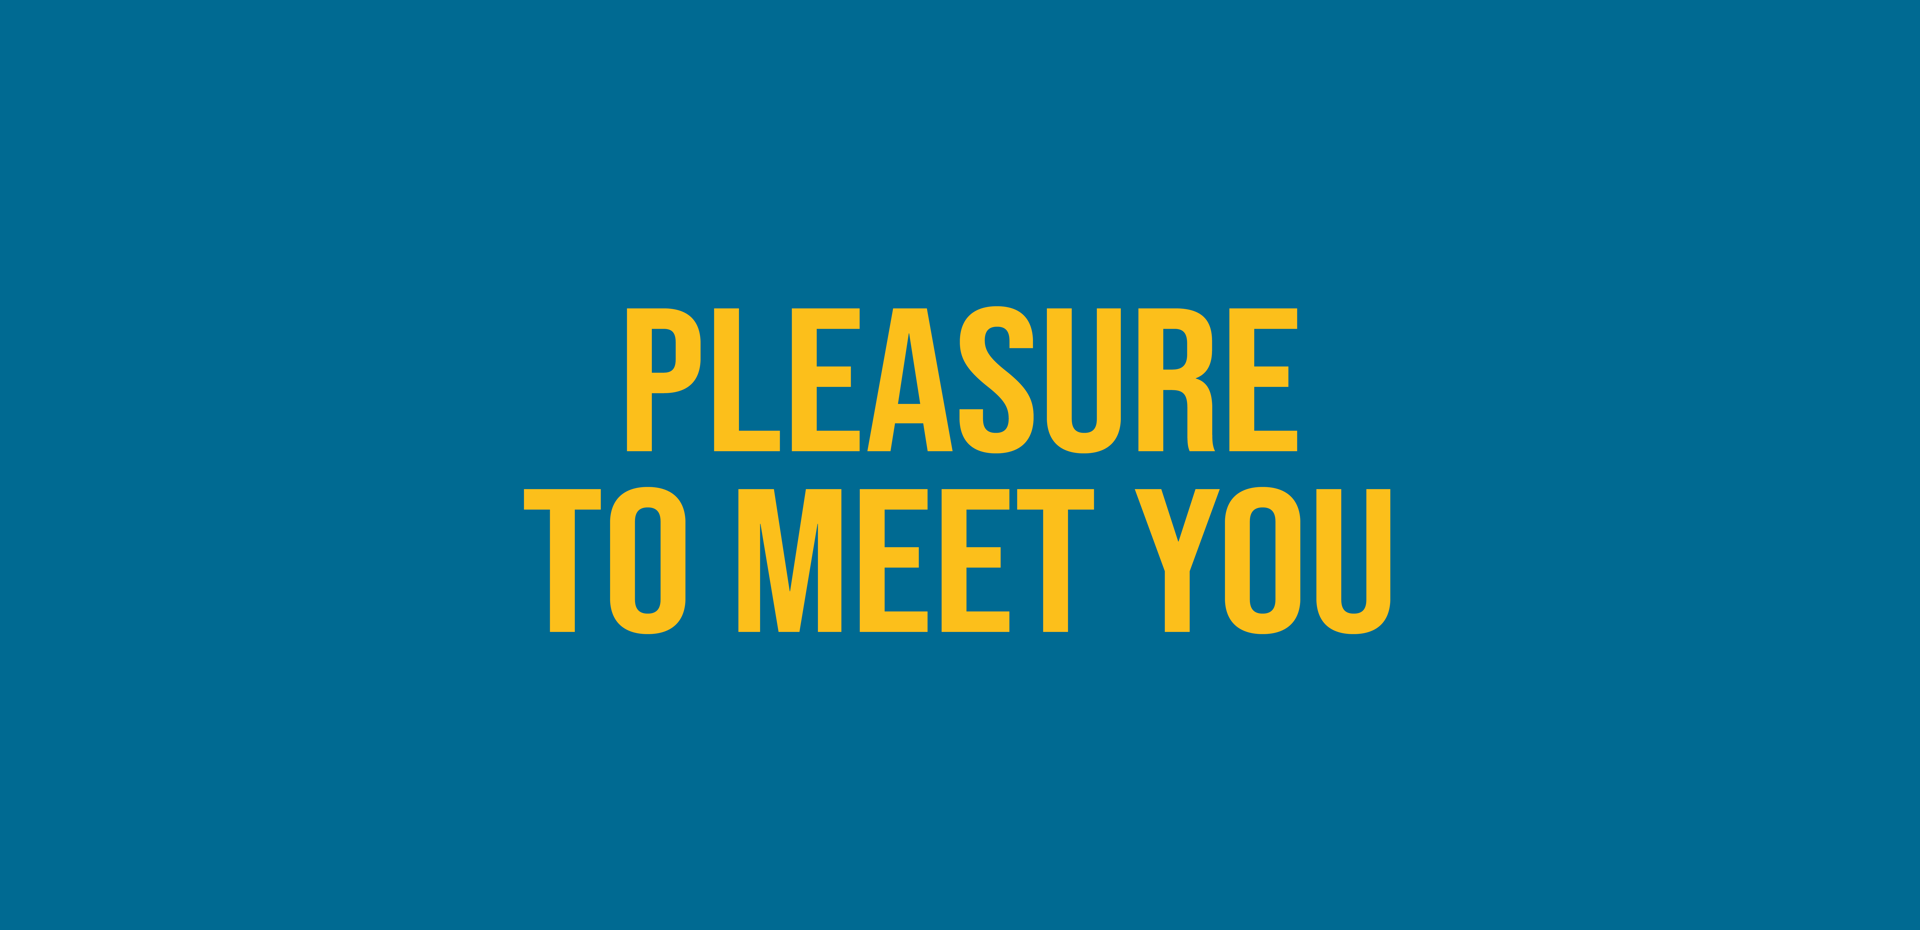 Pleasure to meet you